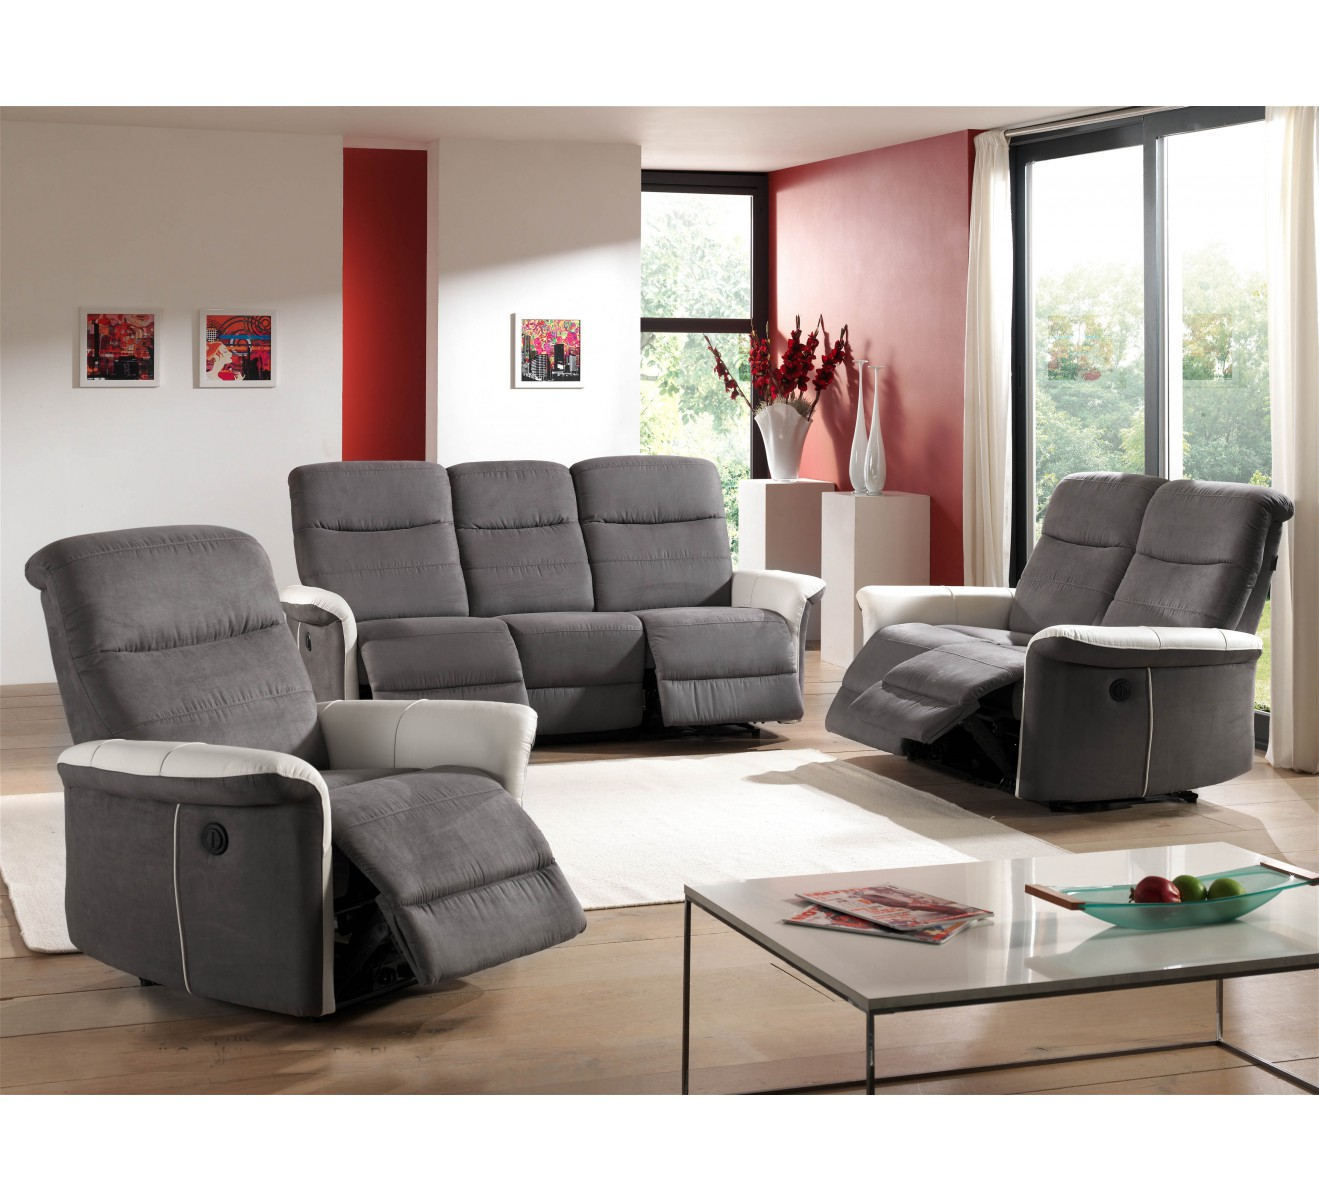 salon complet relax lectrique canap 2 fauteuils gris et cuir gris. Black Bedroom Furniture Sets. Home Design Ideas